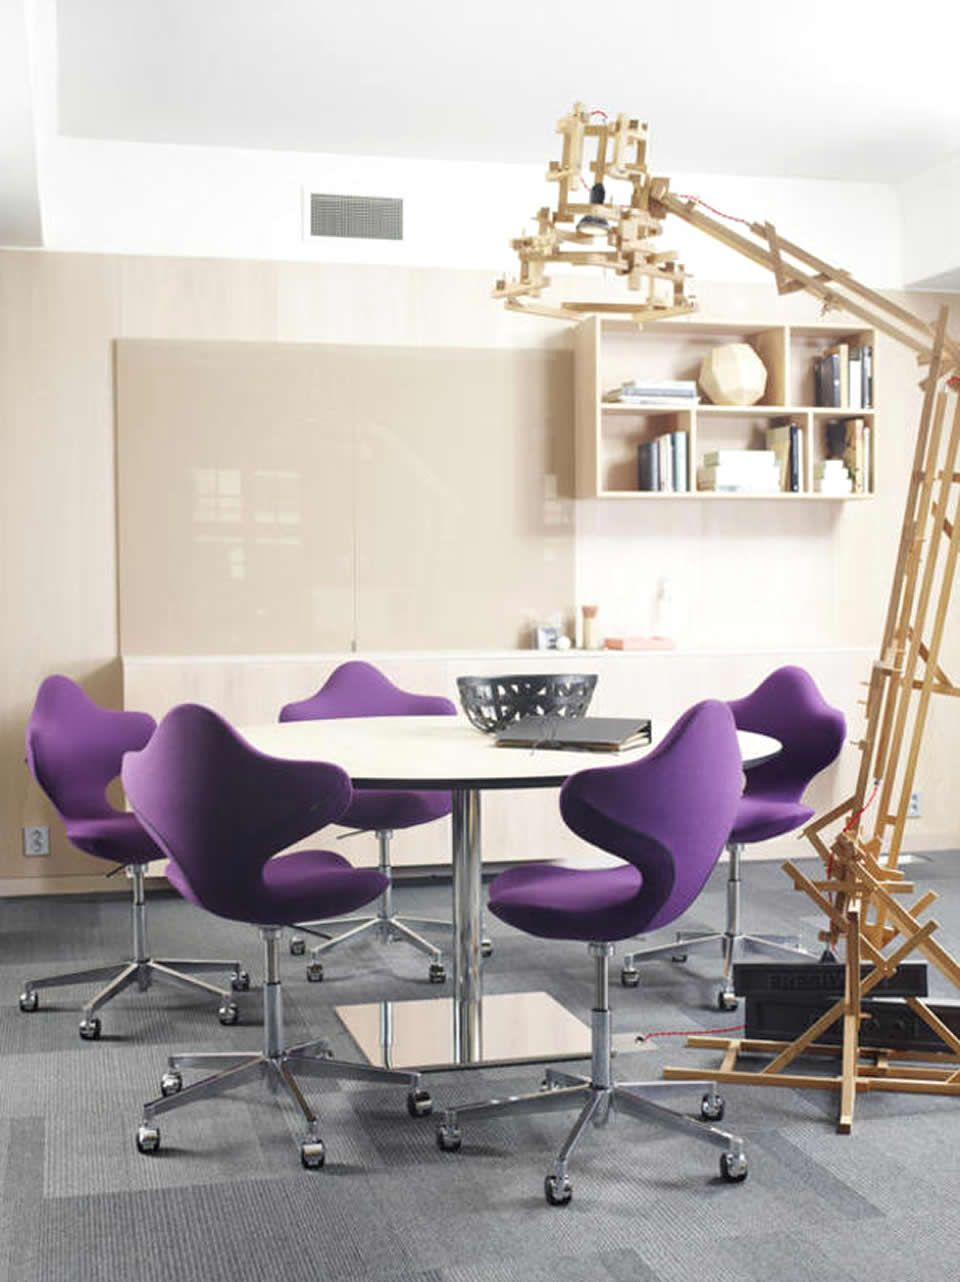 explore office meeting meeting rooms and more